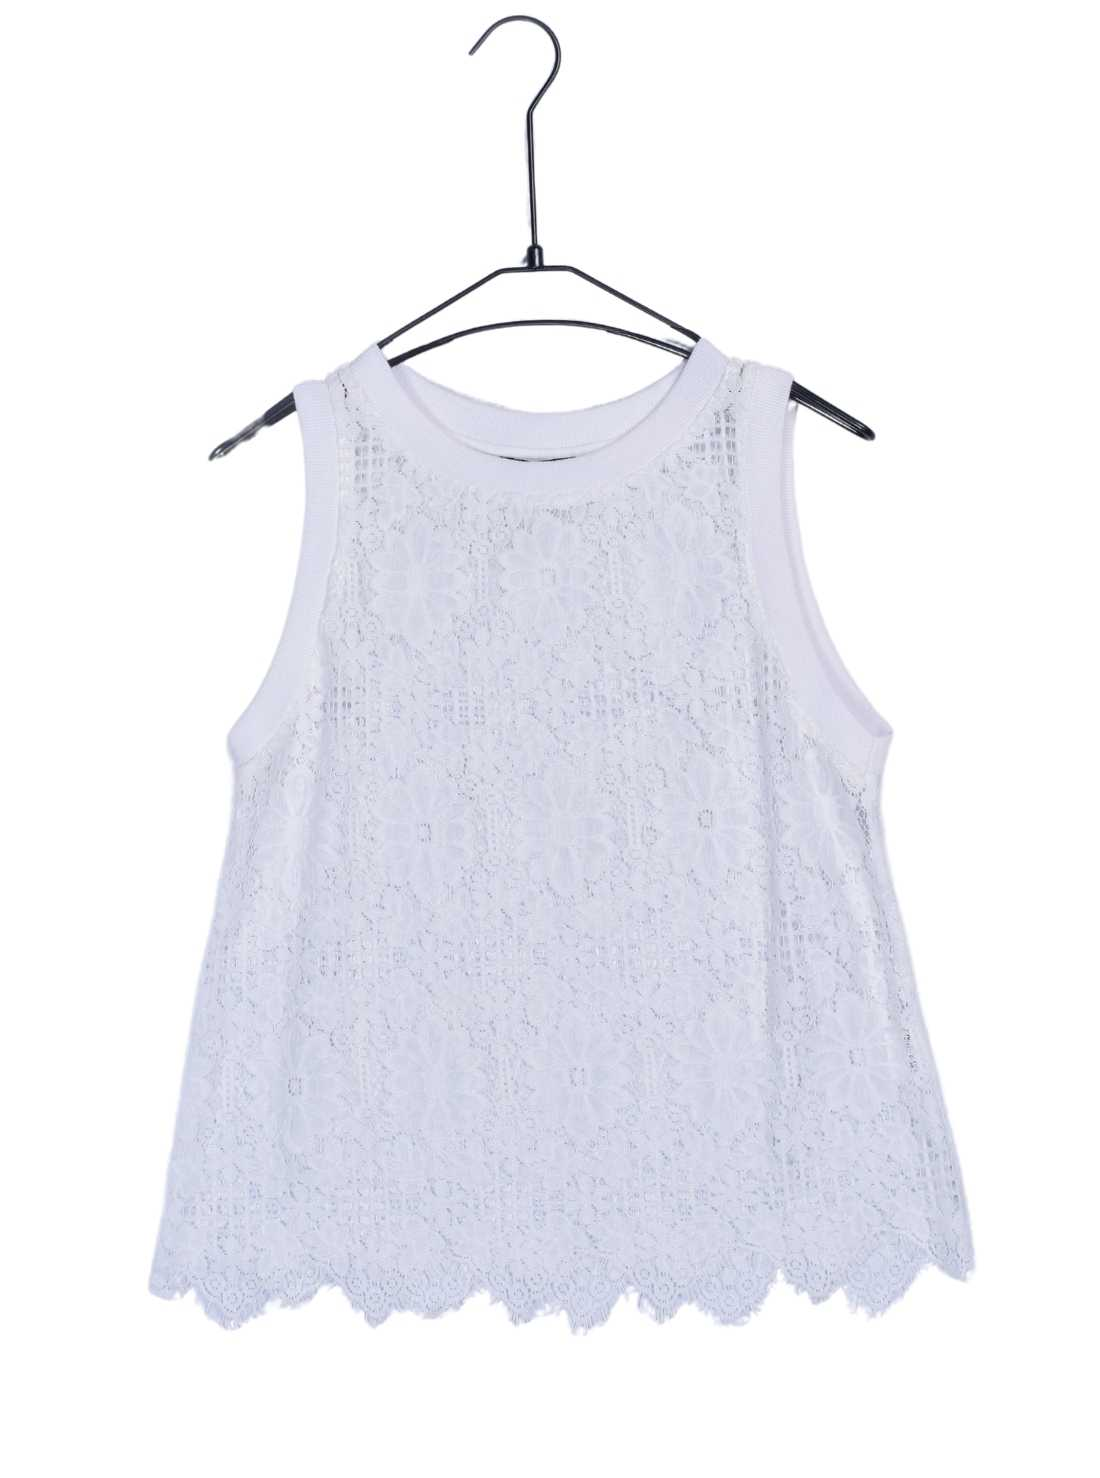 Lace Tank Top with Cotton Rib at Neck and Armhole